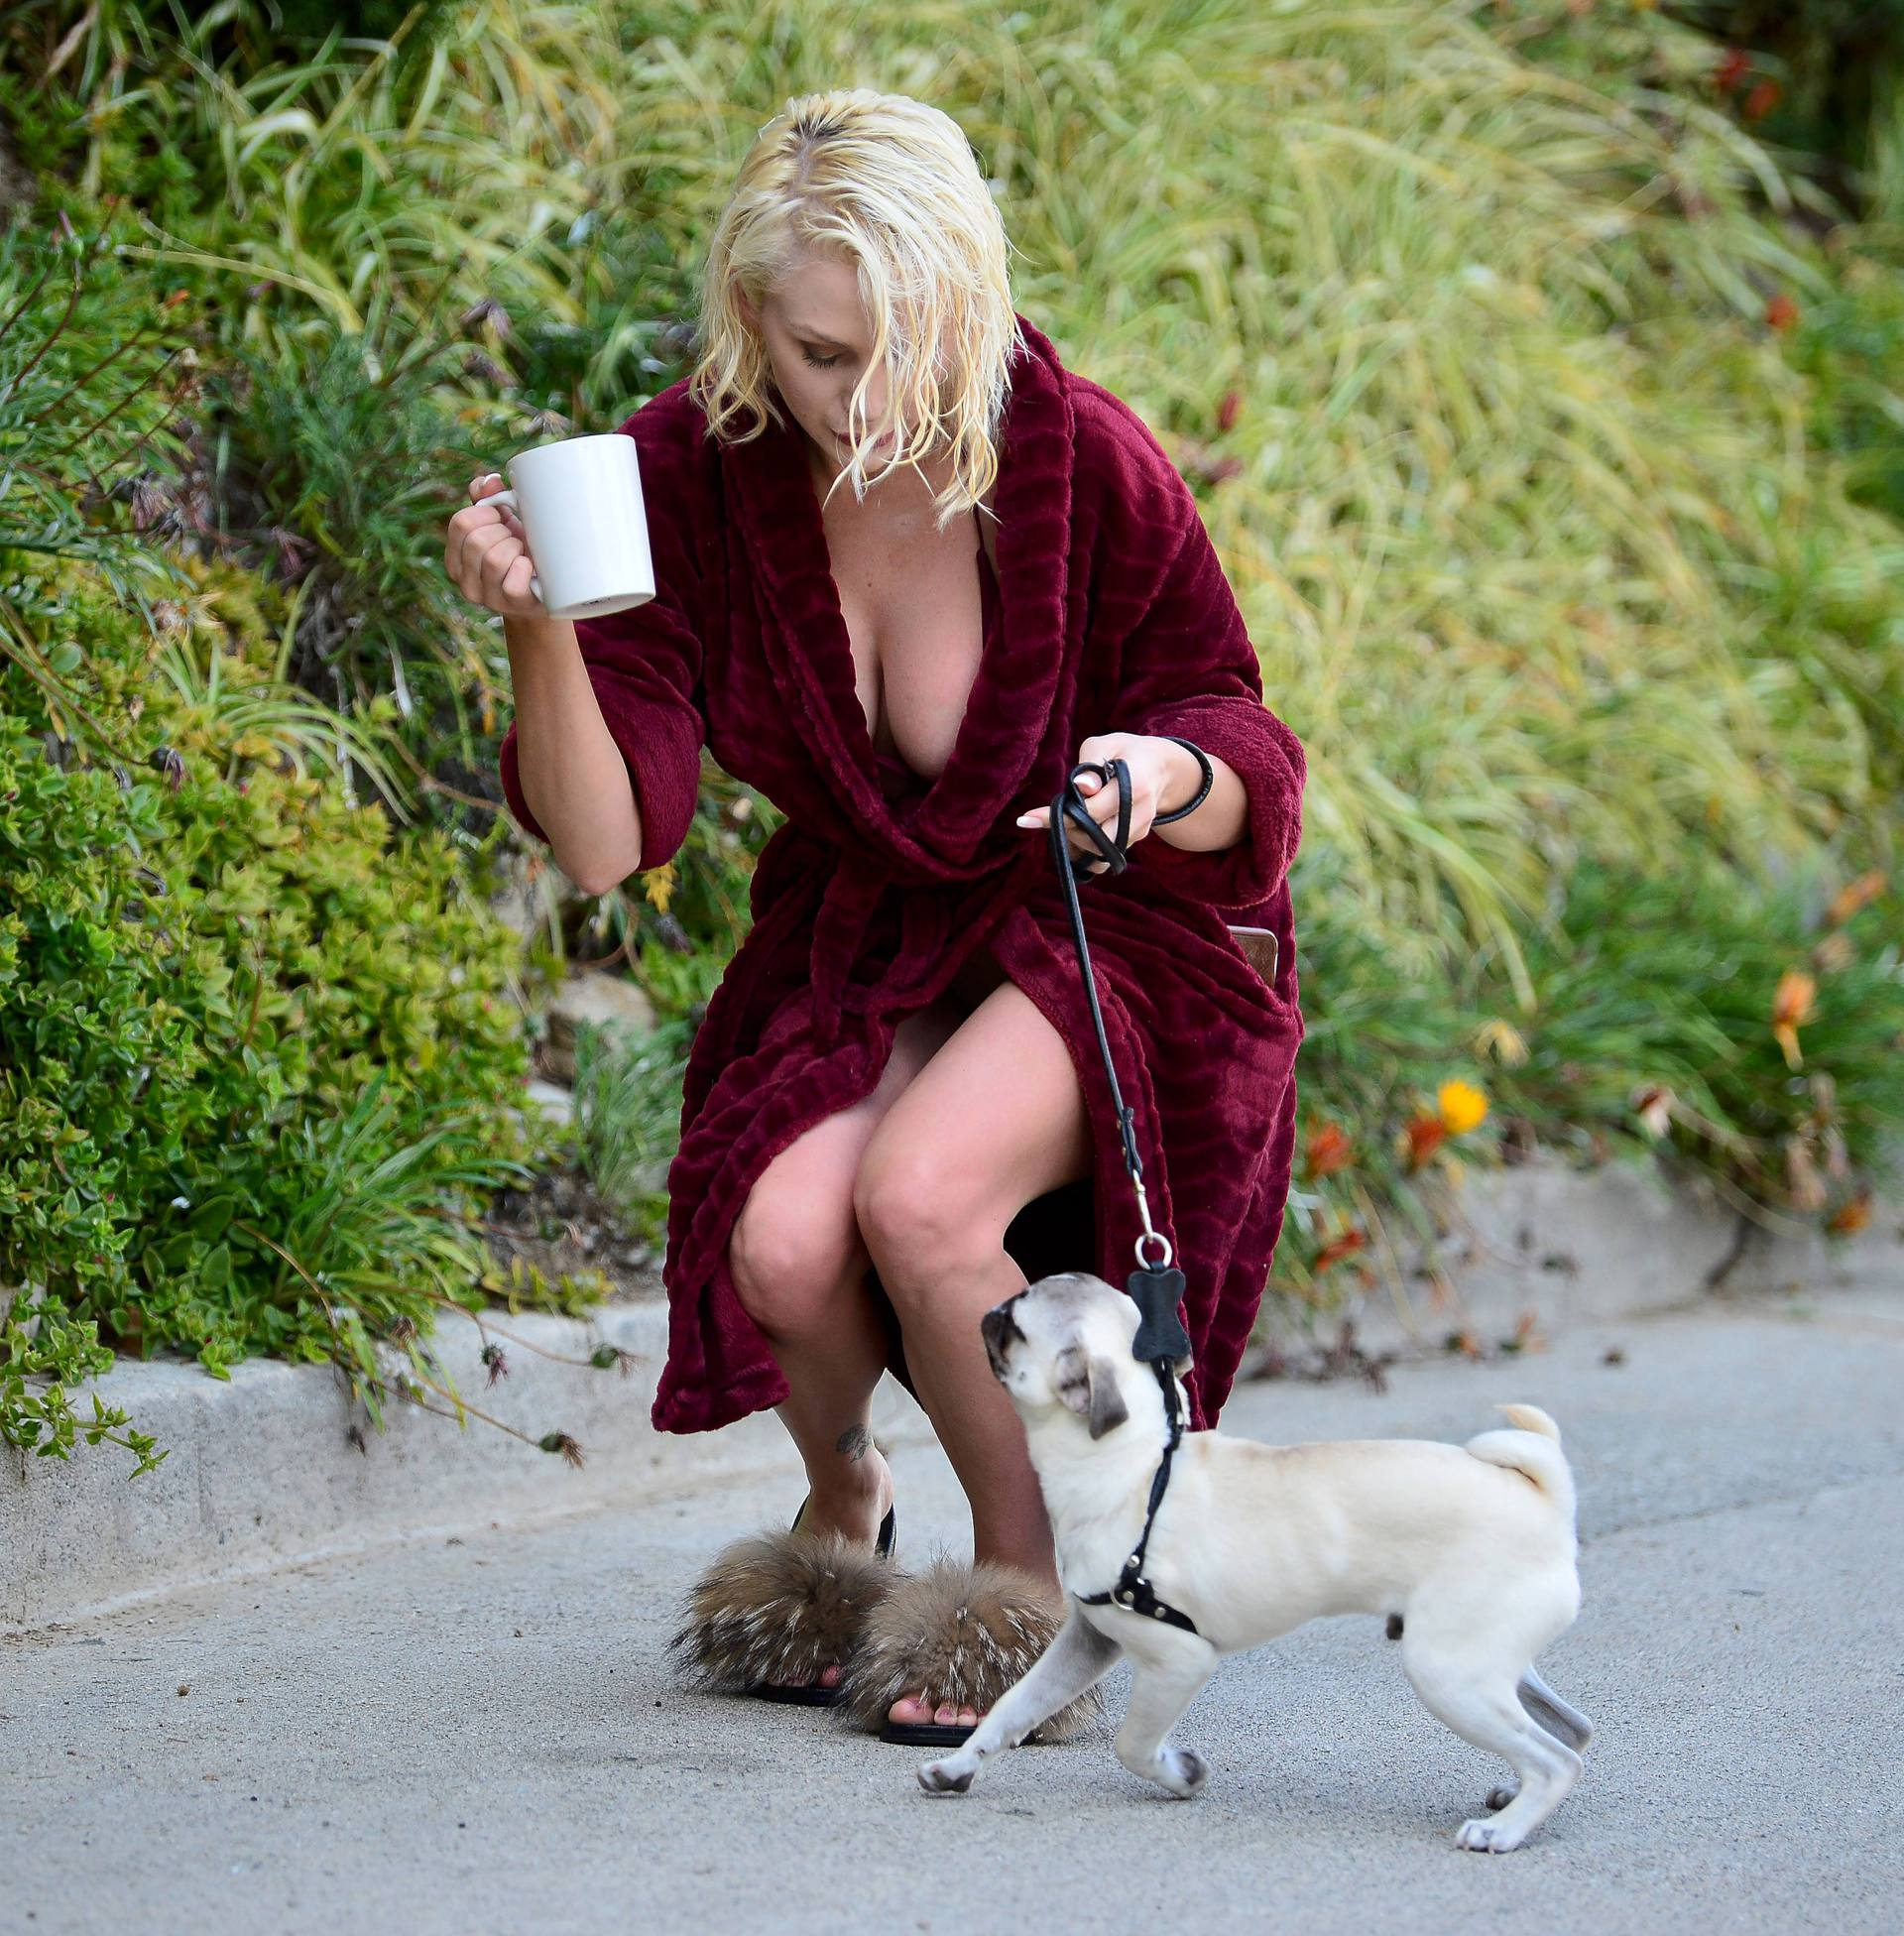 Courtney Stodden Sexy Boobs In Risque Robe Out In Los Angeles 0022